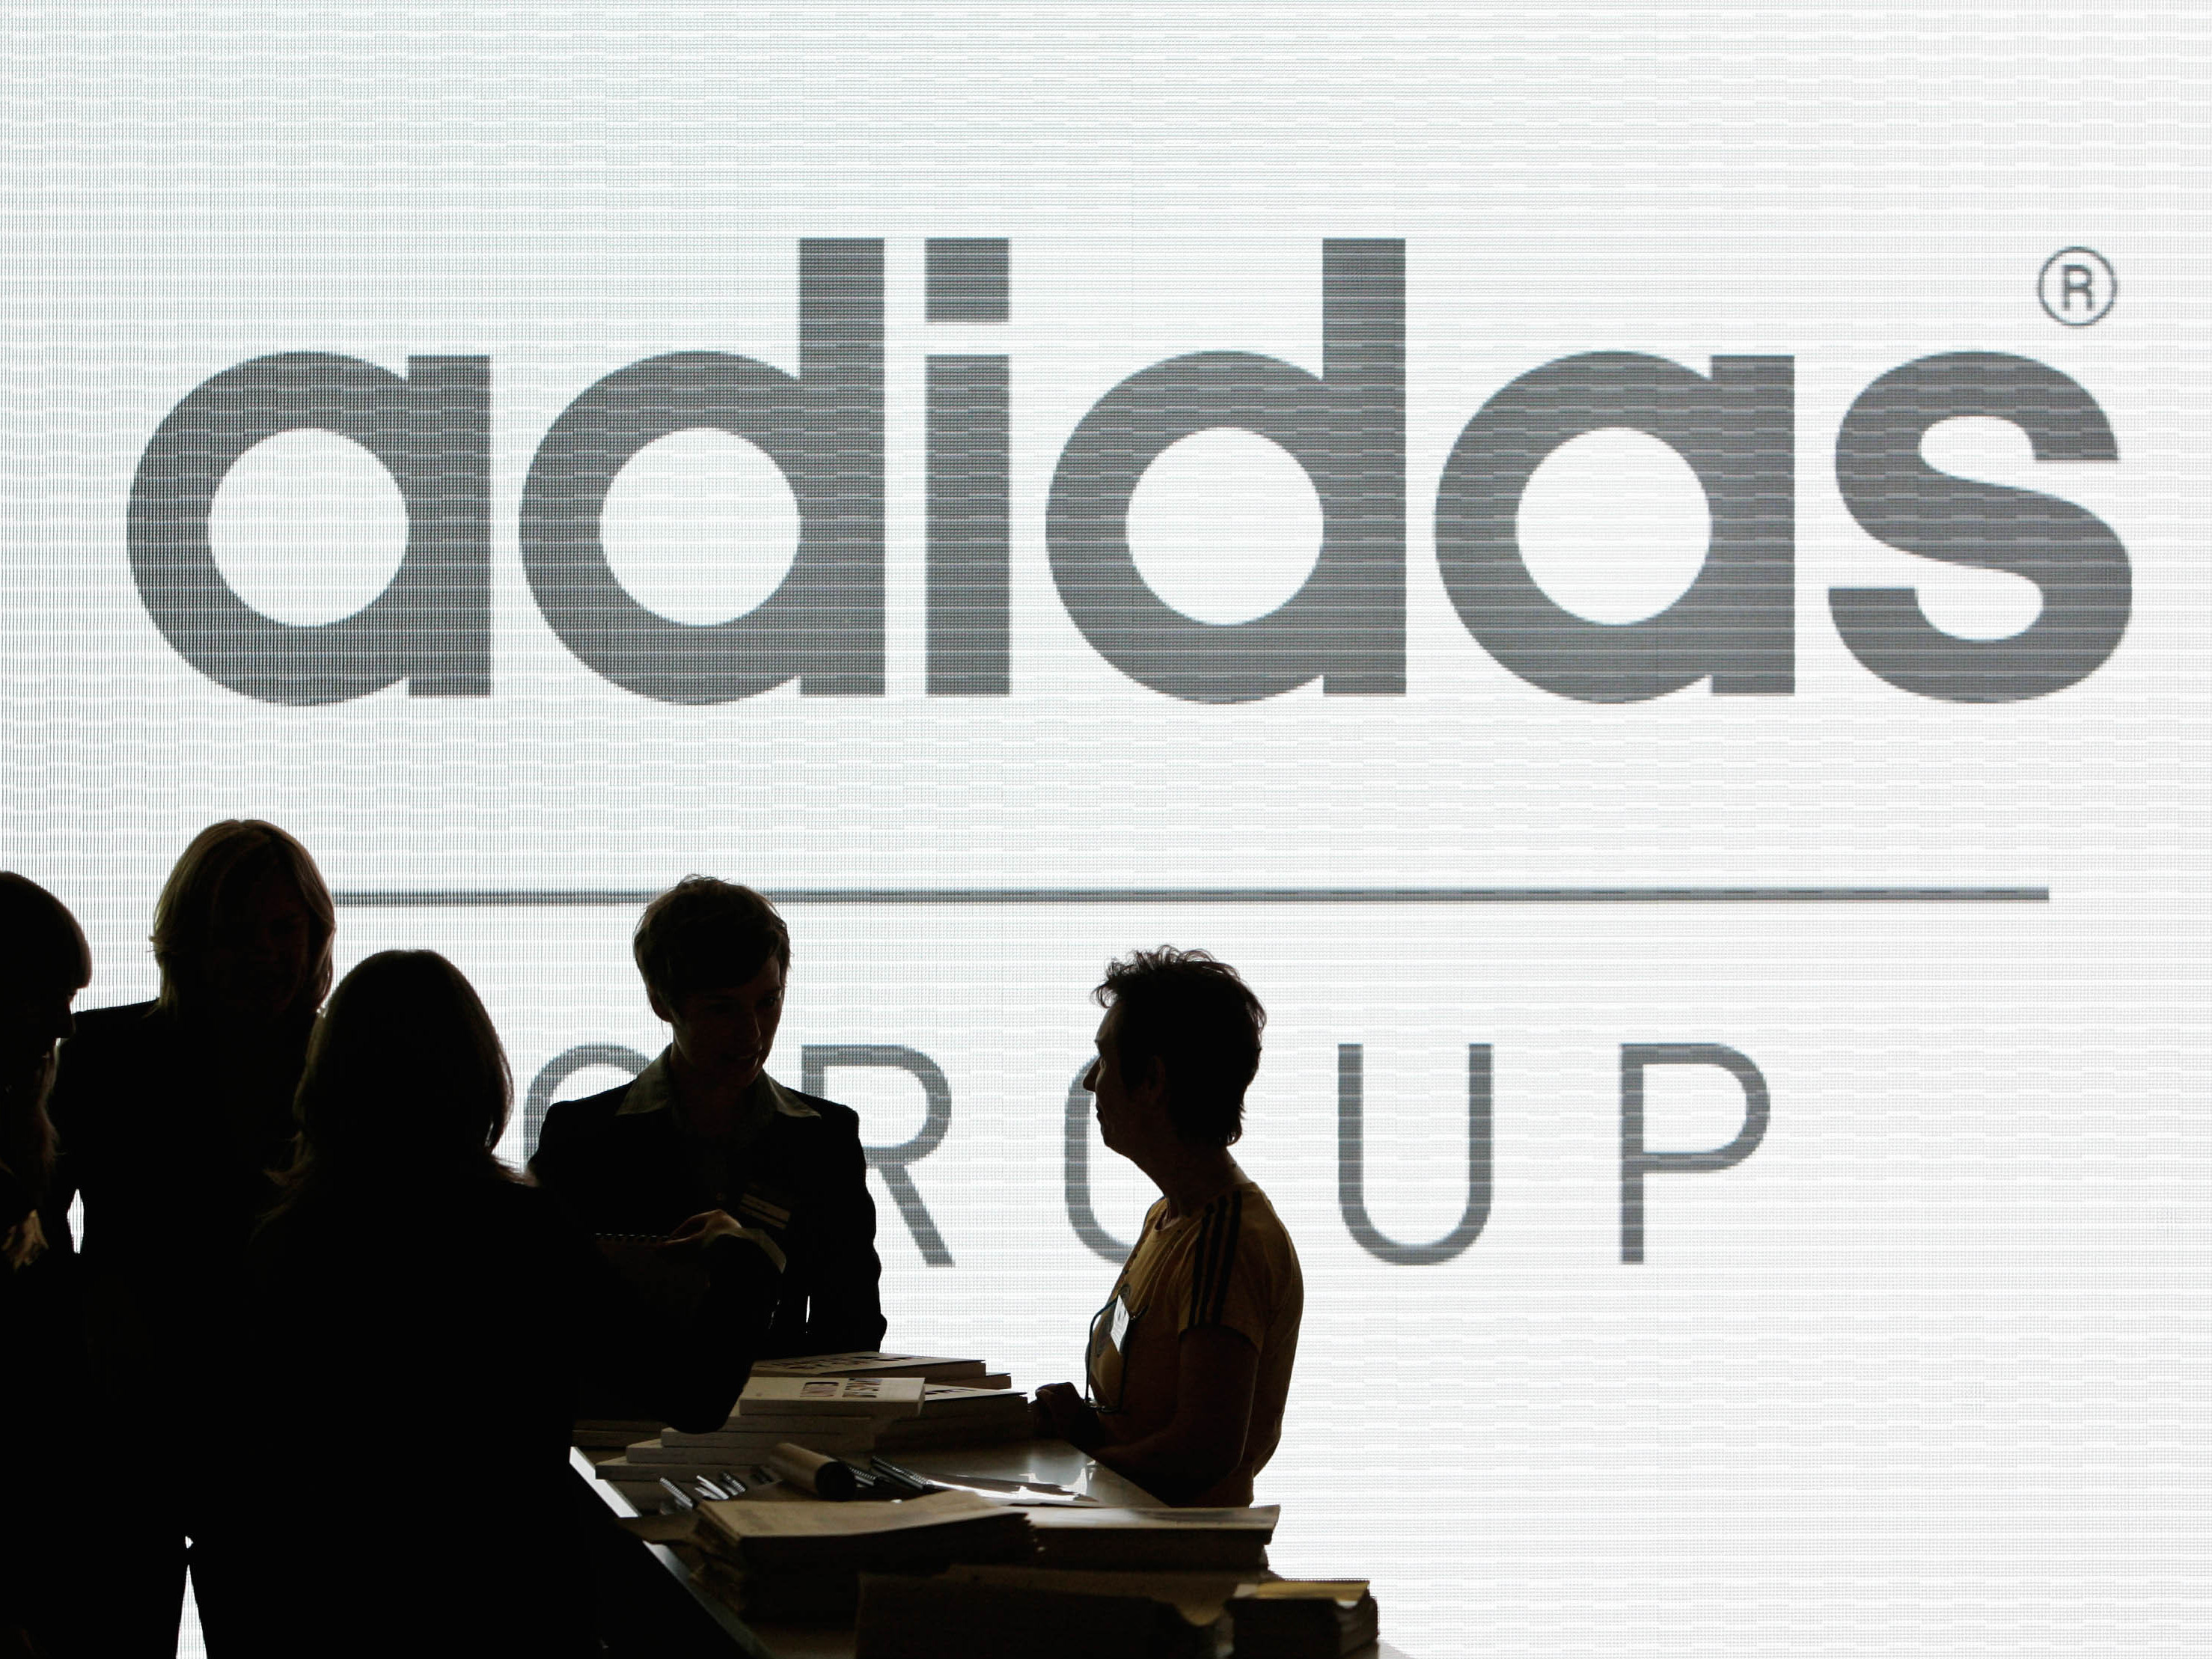 Adidas has pledged to help high school teams that want to change their mascots from Native American imagery. President Obama praised the effort, while the Washington football team shot back, calling the company's move hypocritical. Christof Stache/AP